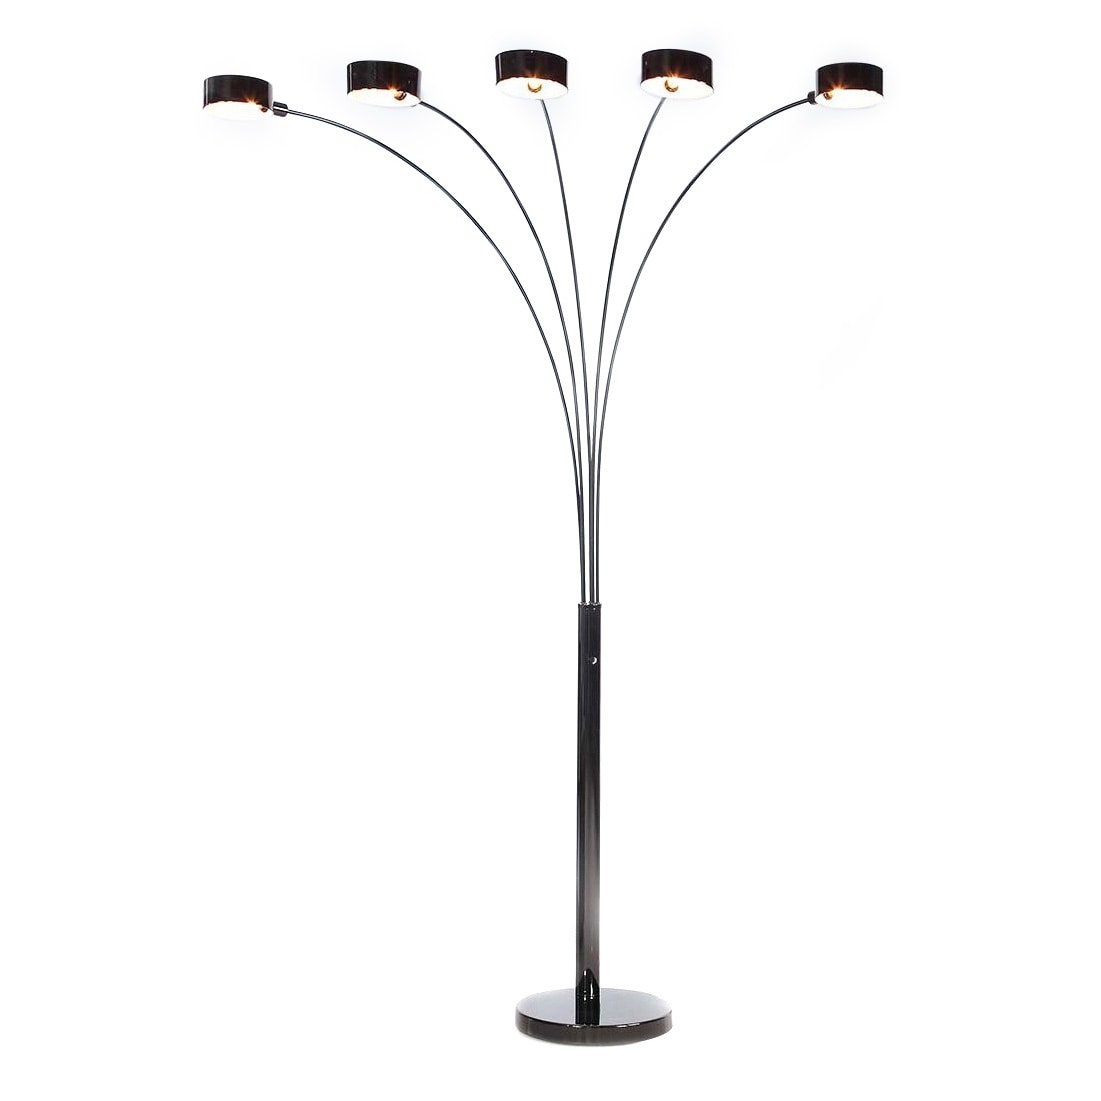 Shop artiva usa micah plus modern led 88 inch 5 arched jet black shop artiva usa micah plus modern led 88 inch 5 arched jet black floor lamp with dimmer free shipping today overstock 13828179 aloadofball Image collections